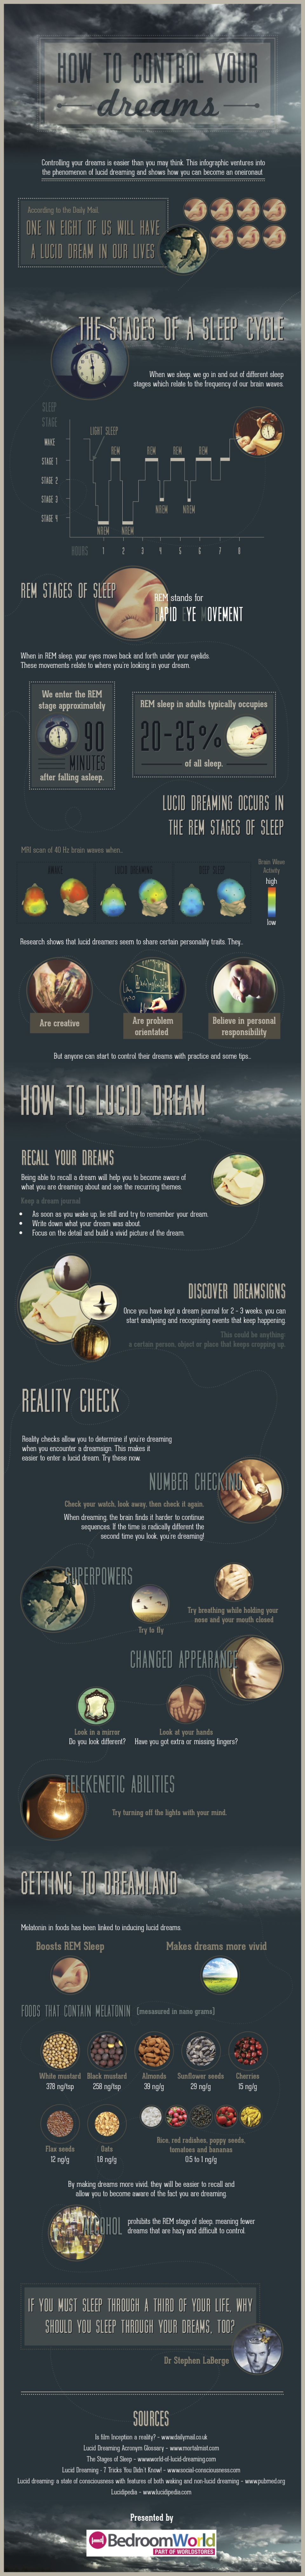 How To Control Your Dreams | Infographic